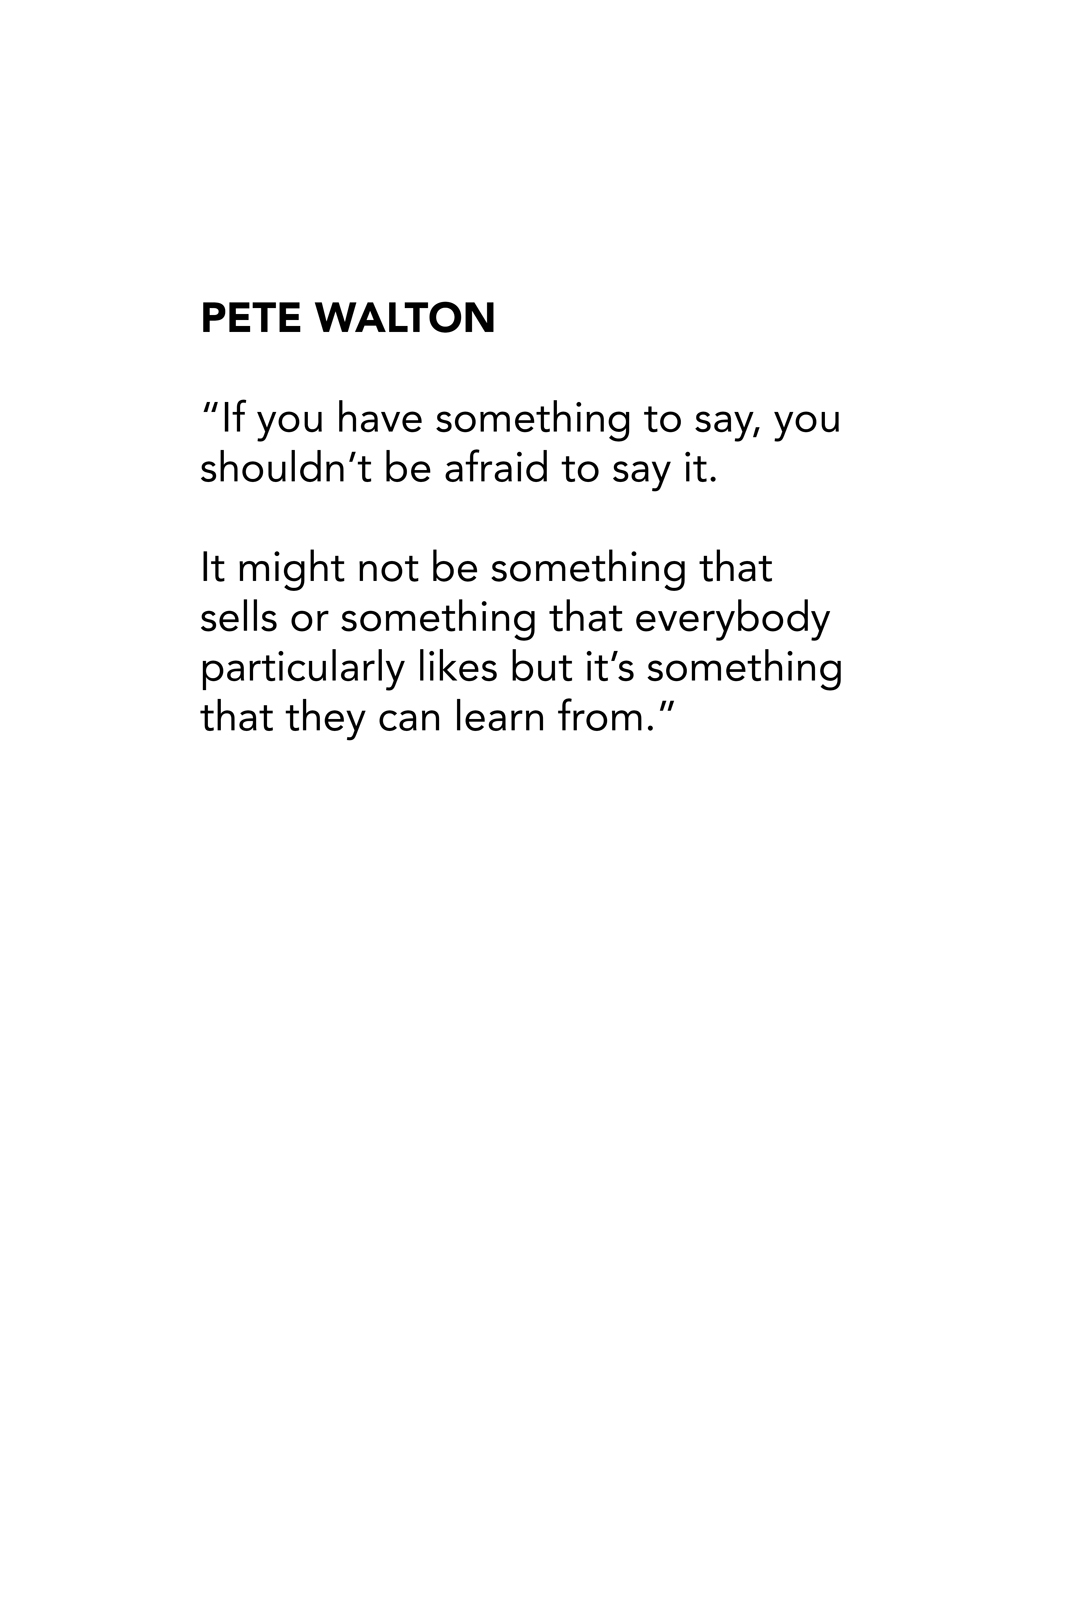 Pete Walton Quote.jpg